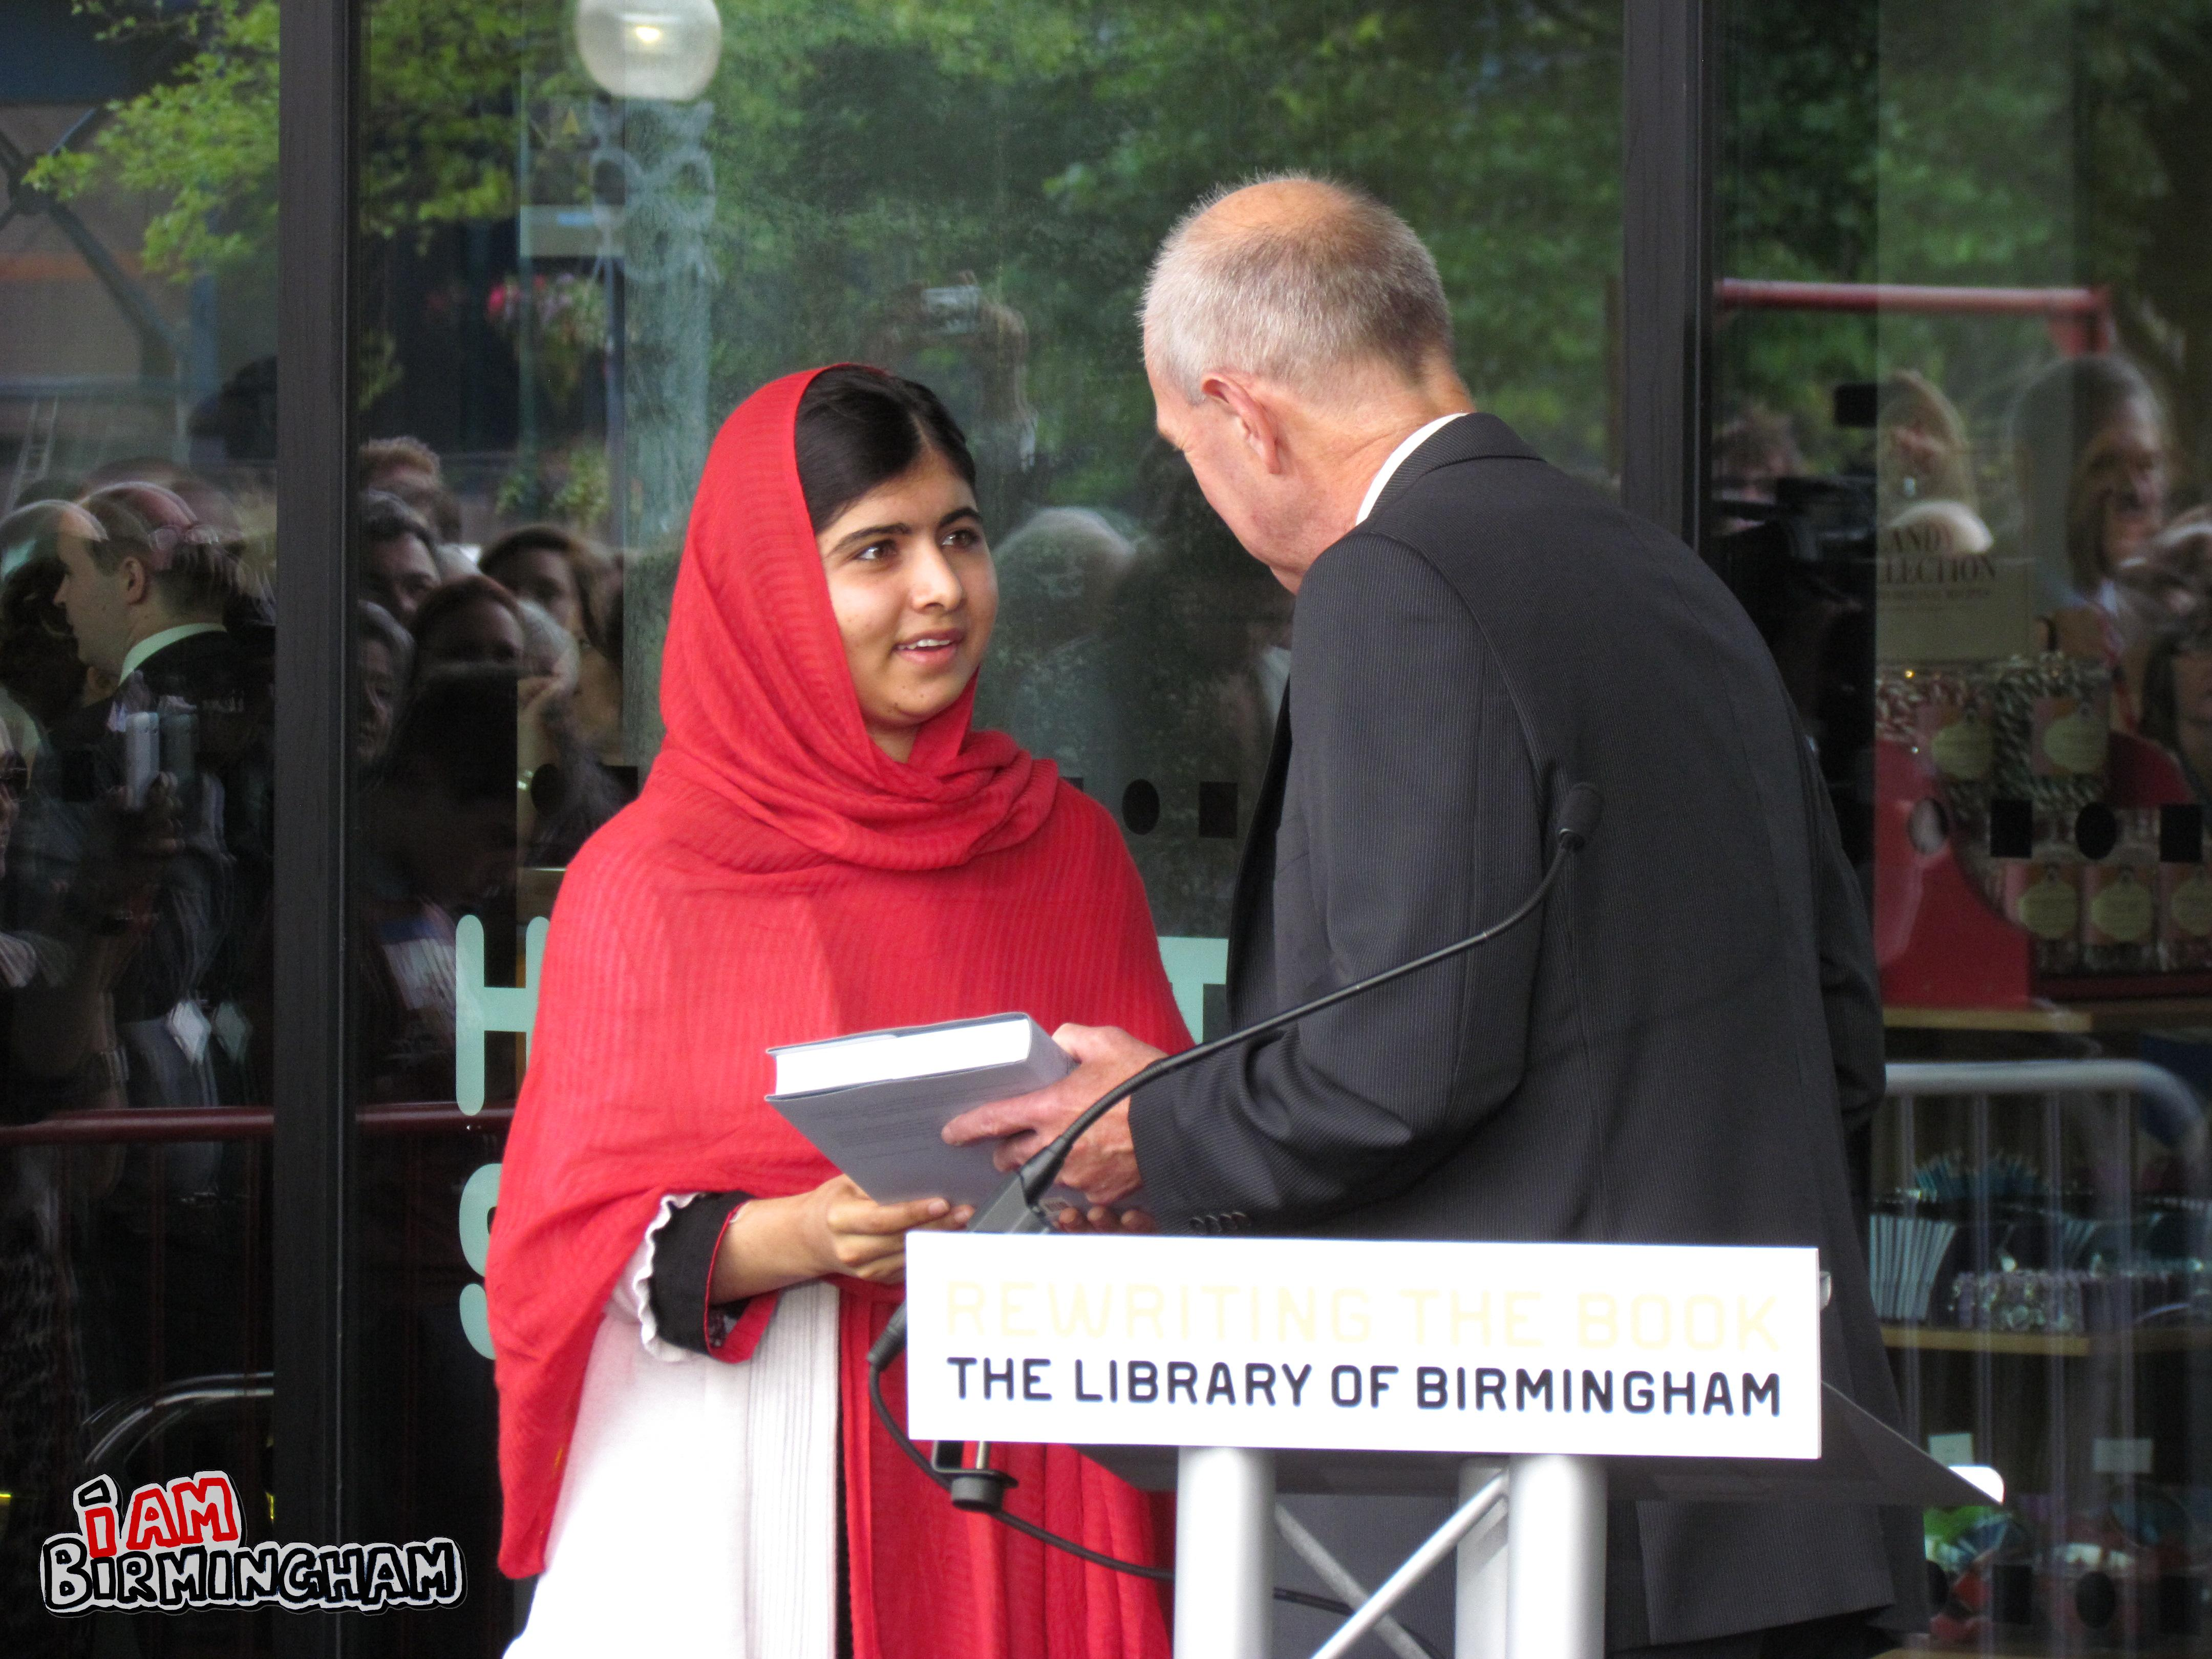 Teenage education campaigner Malala Yousafzai opens the new Library of Birmingham